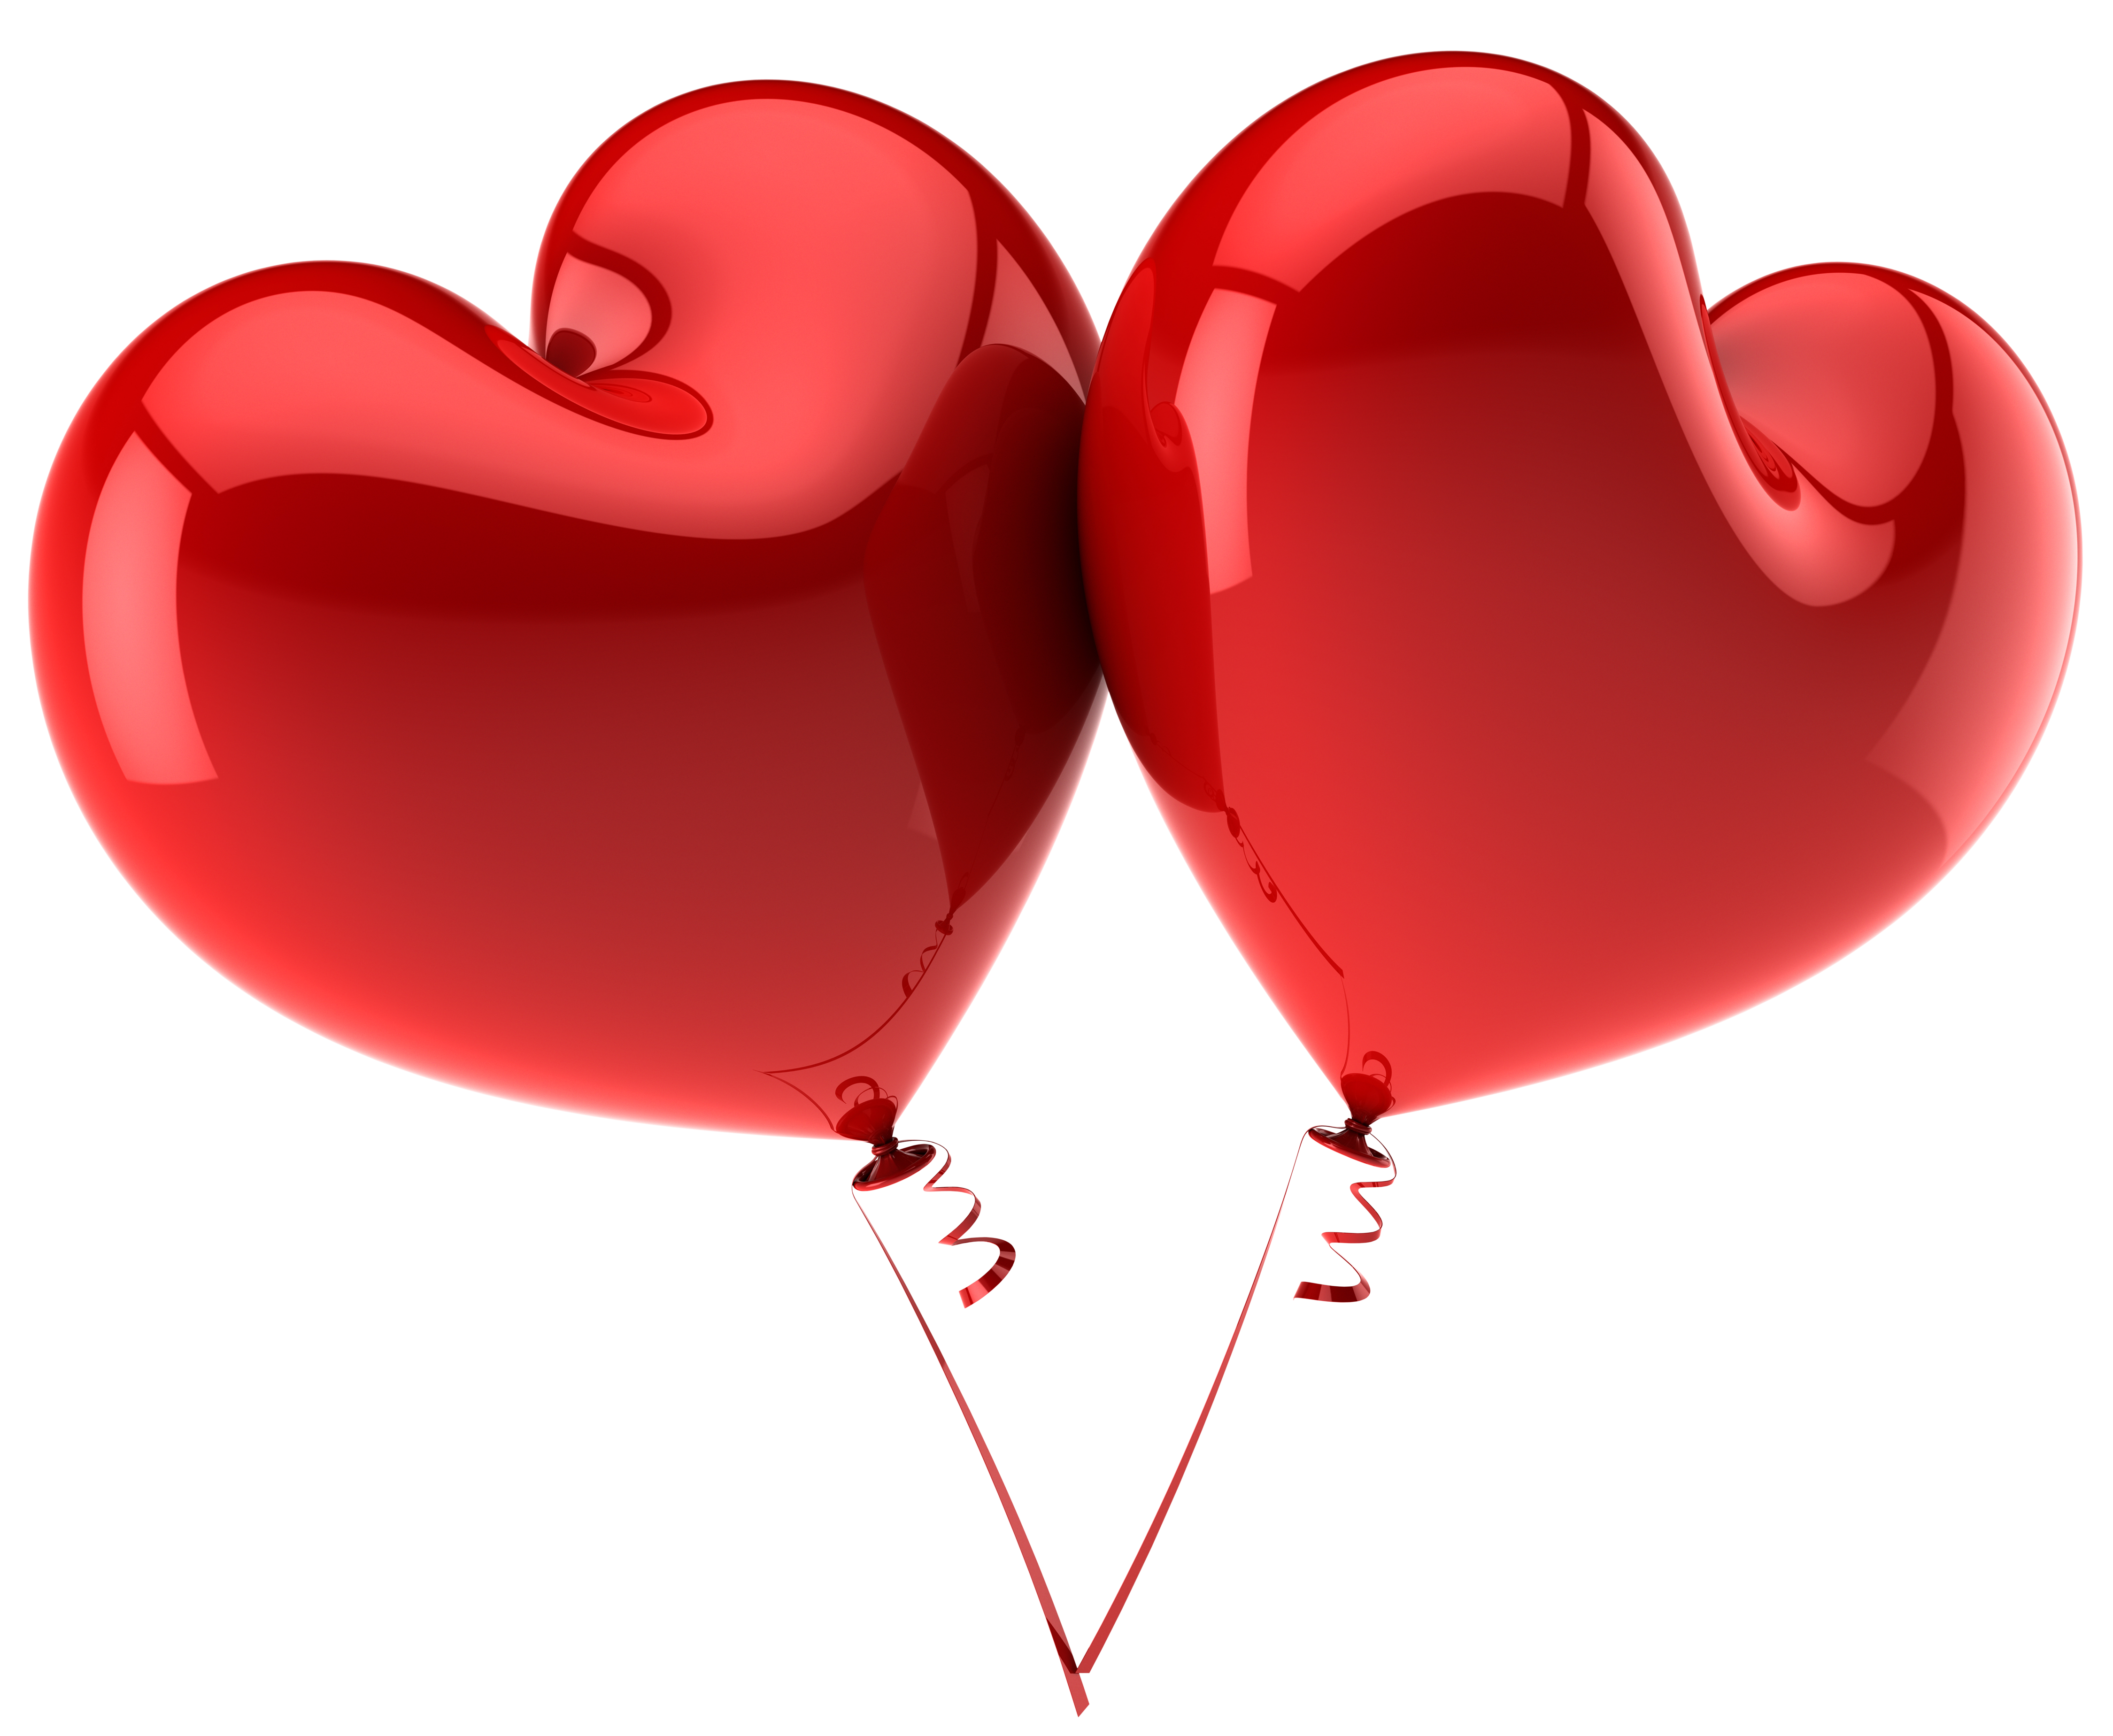 Heart balloon clipart picture free stock Heart Balloon Red Clip art - Red Large Heart Balloons PNG Clipart ... picture free stock